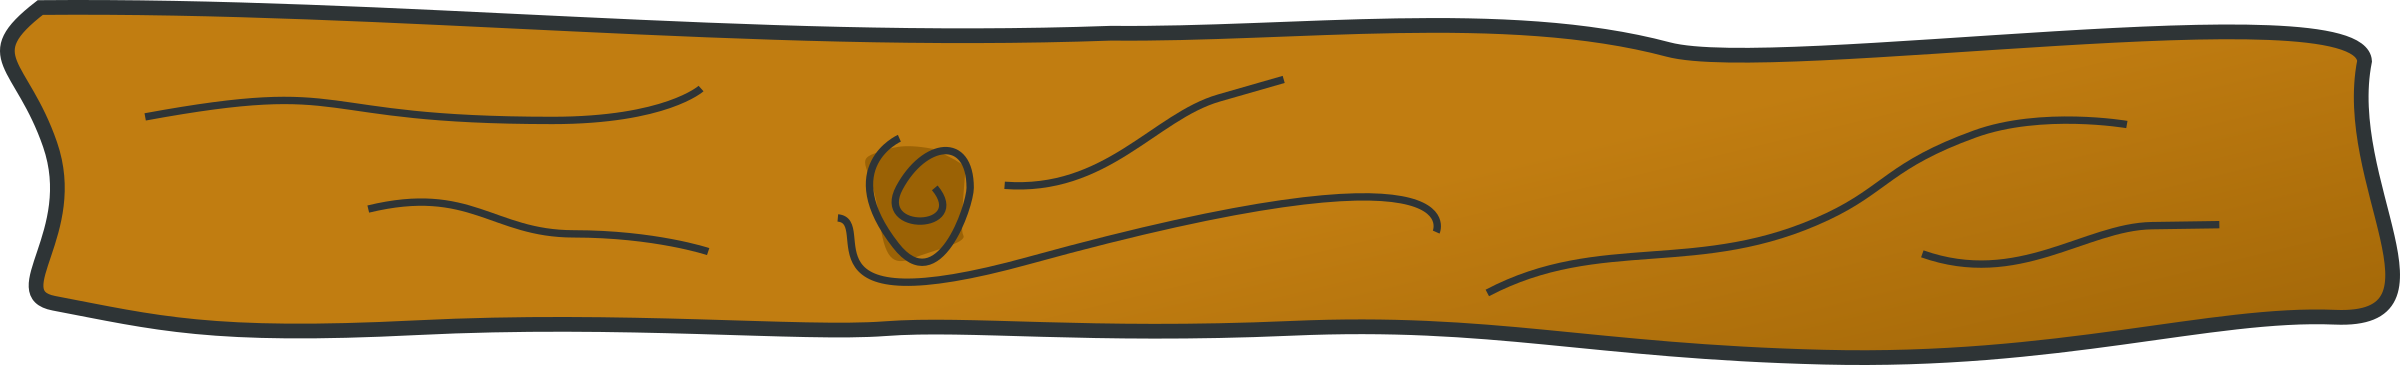 Plank Of Wood Clipart.